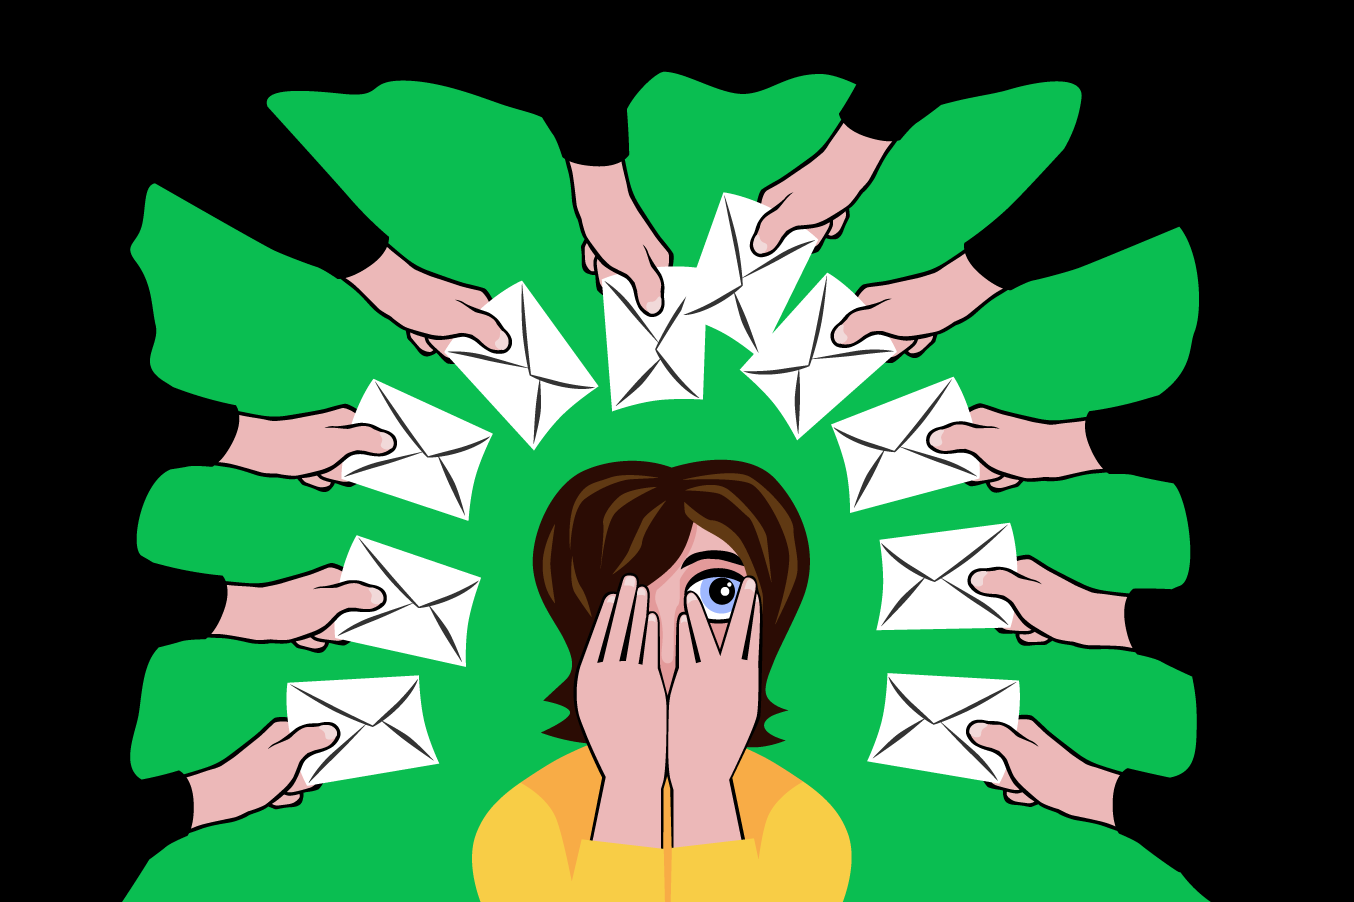 How to reduce email clutter and gain control of your life